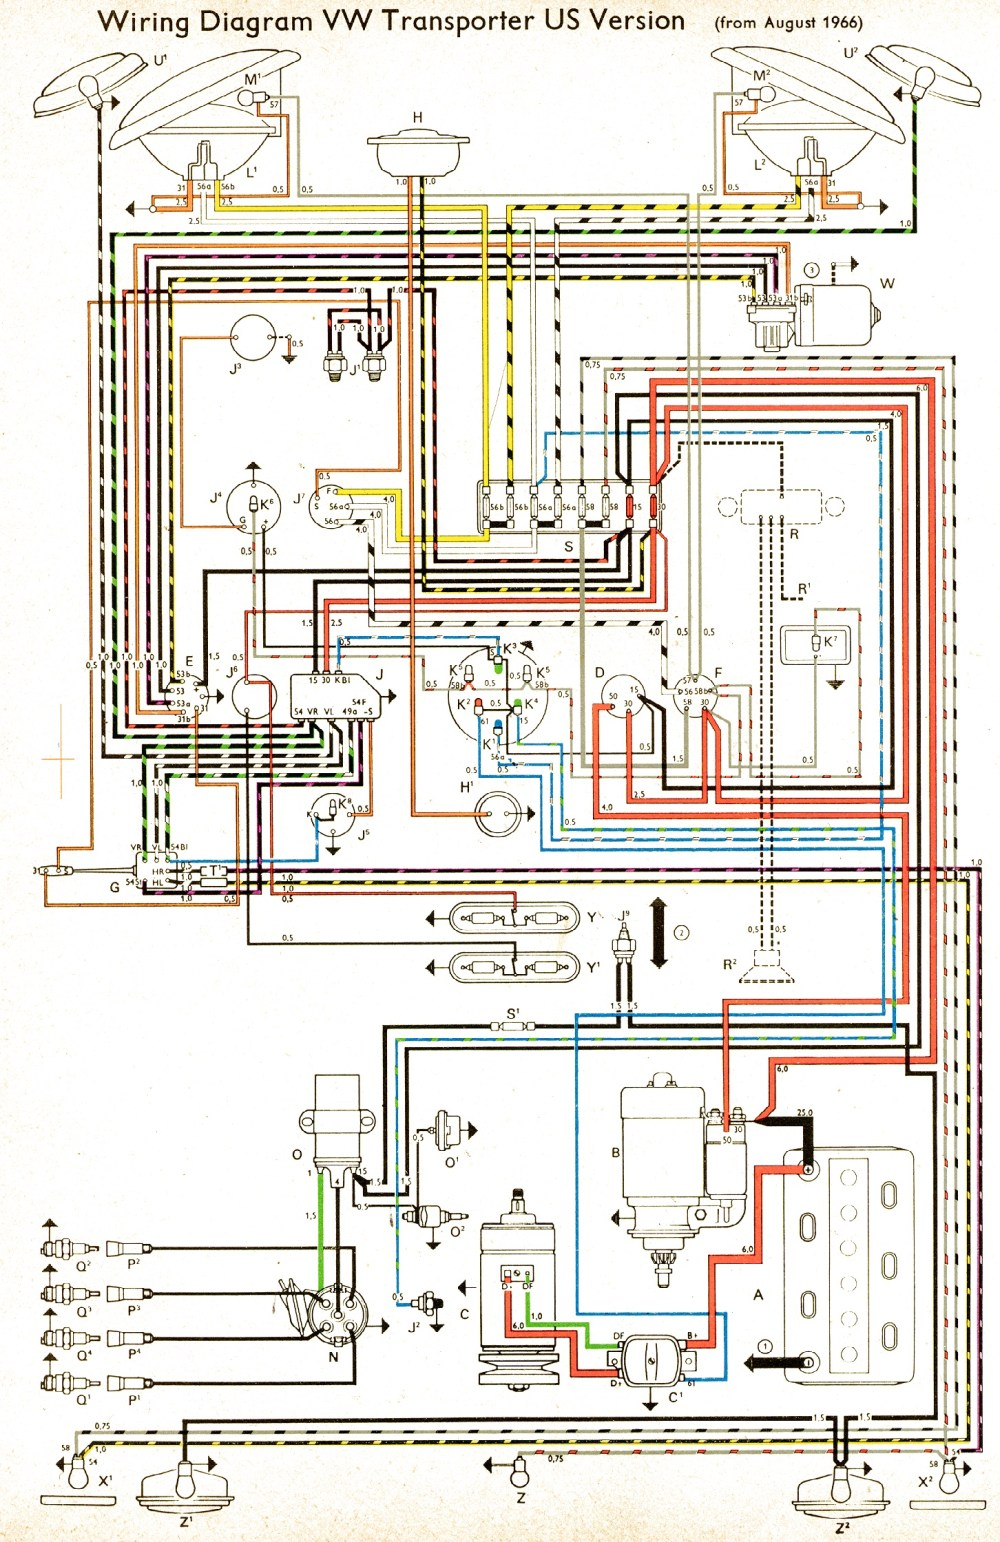 medium resolution of 77 vw van wiring diagram wiring diagram third level 77 gmc wiring diagram 77 vw van